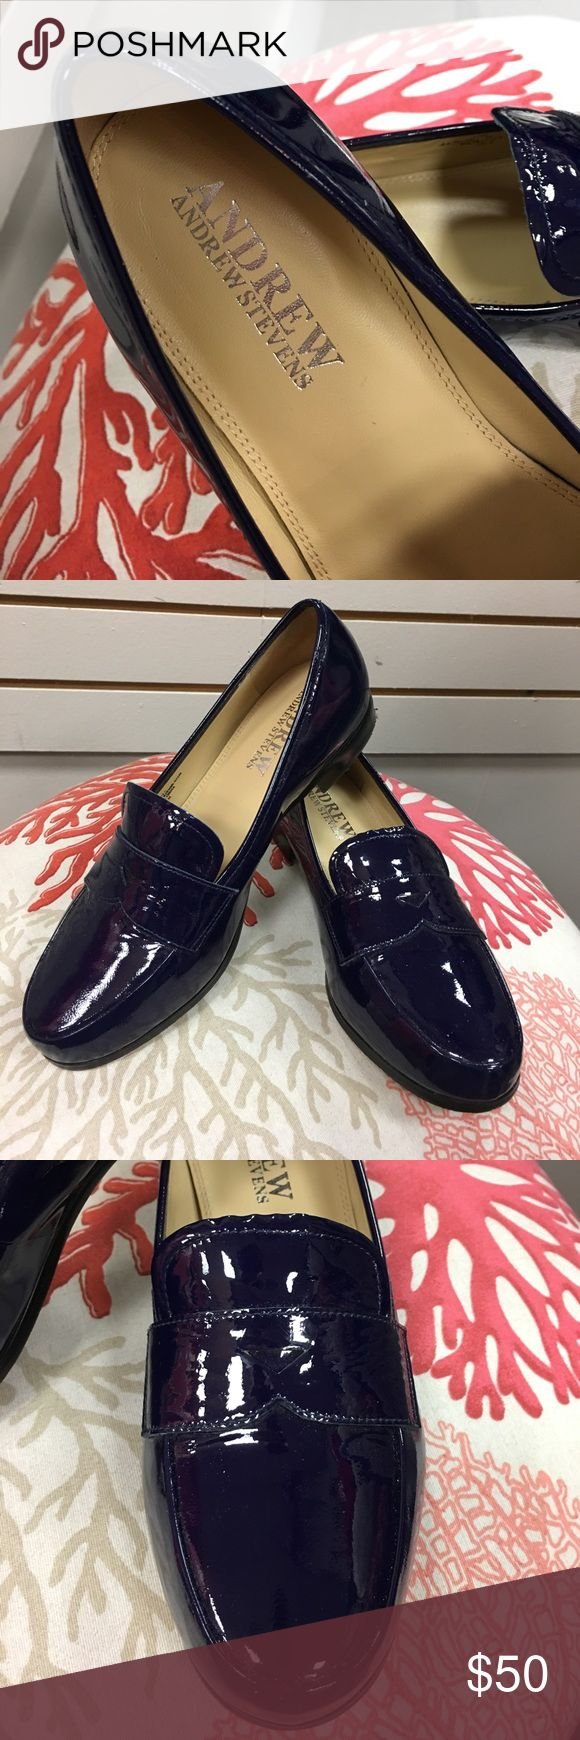 Andrew Stevens Navy Patent Leather Loafer Navy blue patent leather penny loafer. Great used condition. Please examine photos carefully, ask questions and make offers! All sales from this closet benefit a Women's Resource Center in Florida. Andrew Stevens Shoes Flats & Loafers